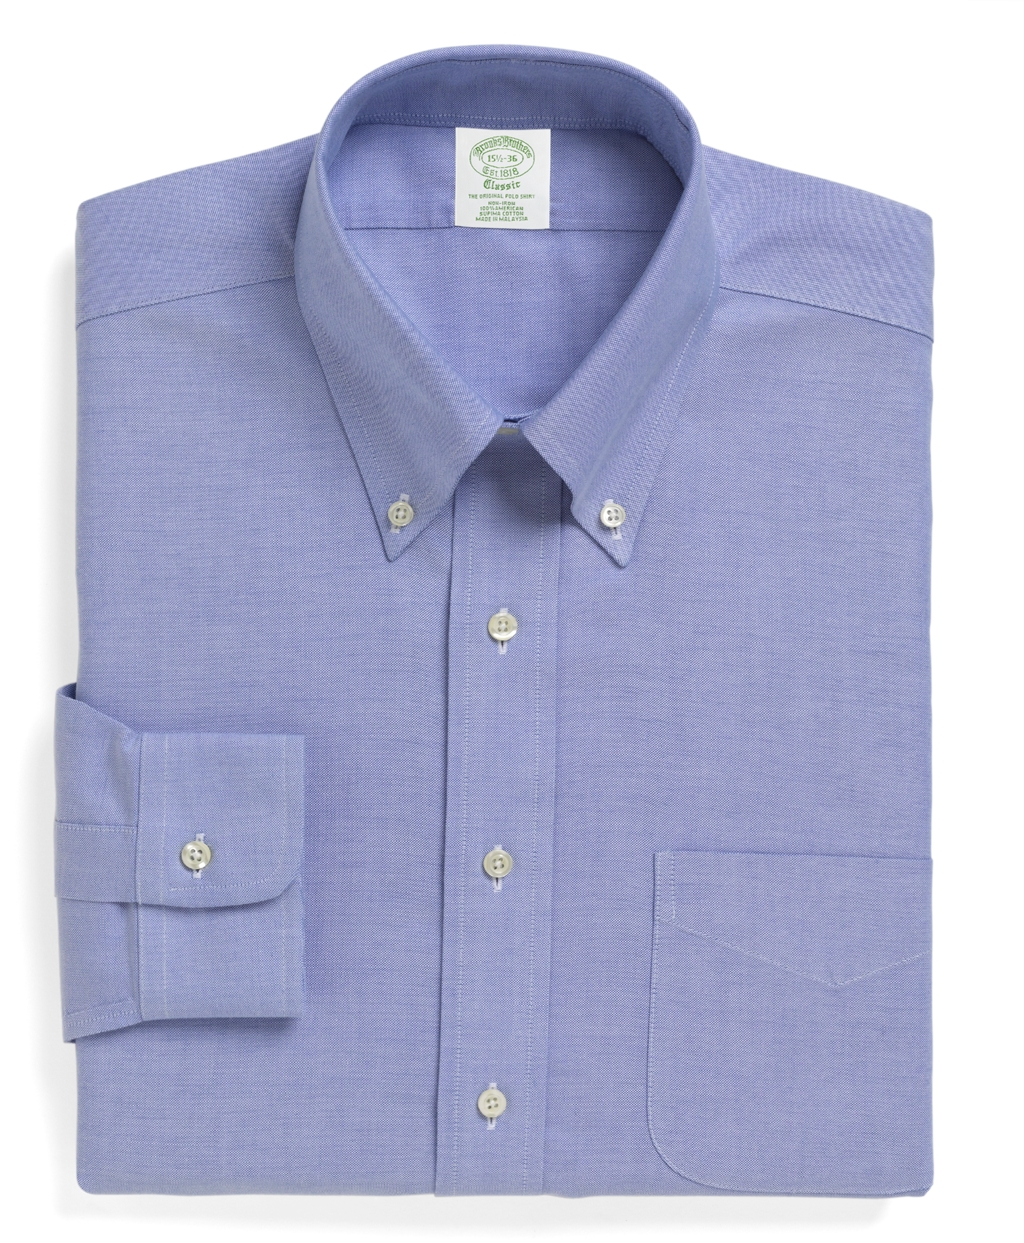 Brooks brothers non iron milano fit brookscool button for Brooks brothers non iron shirt review